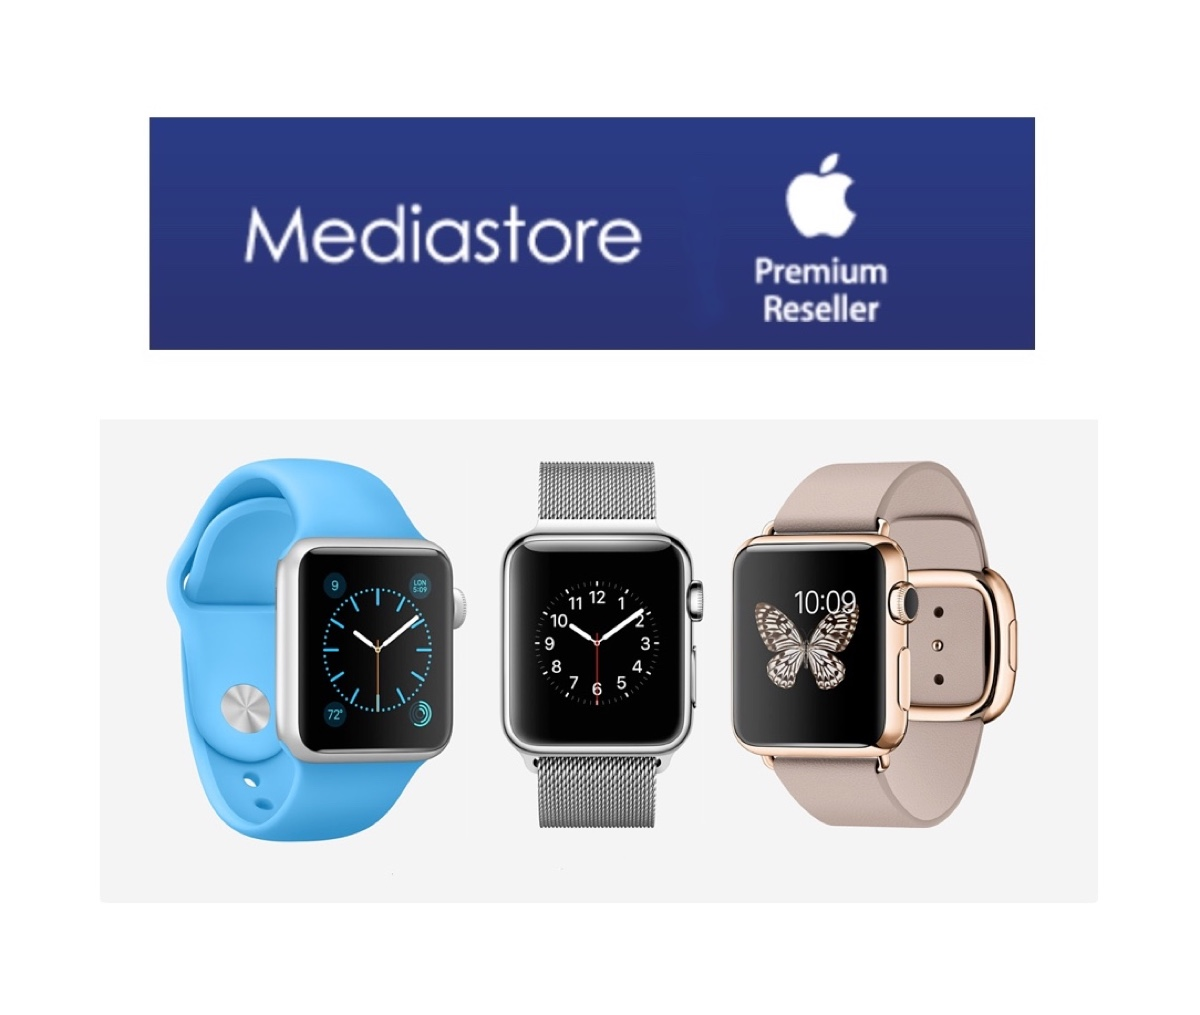 mediastore apple watch icon 2